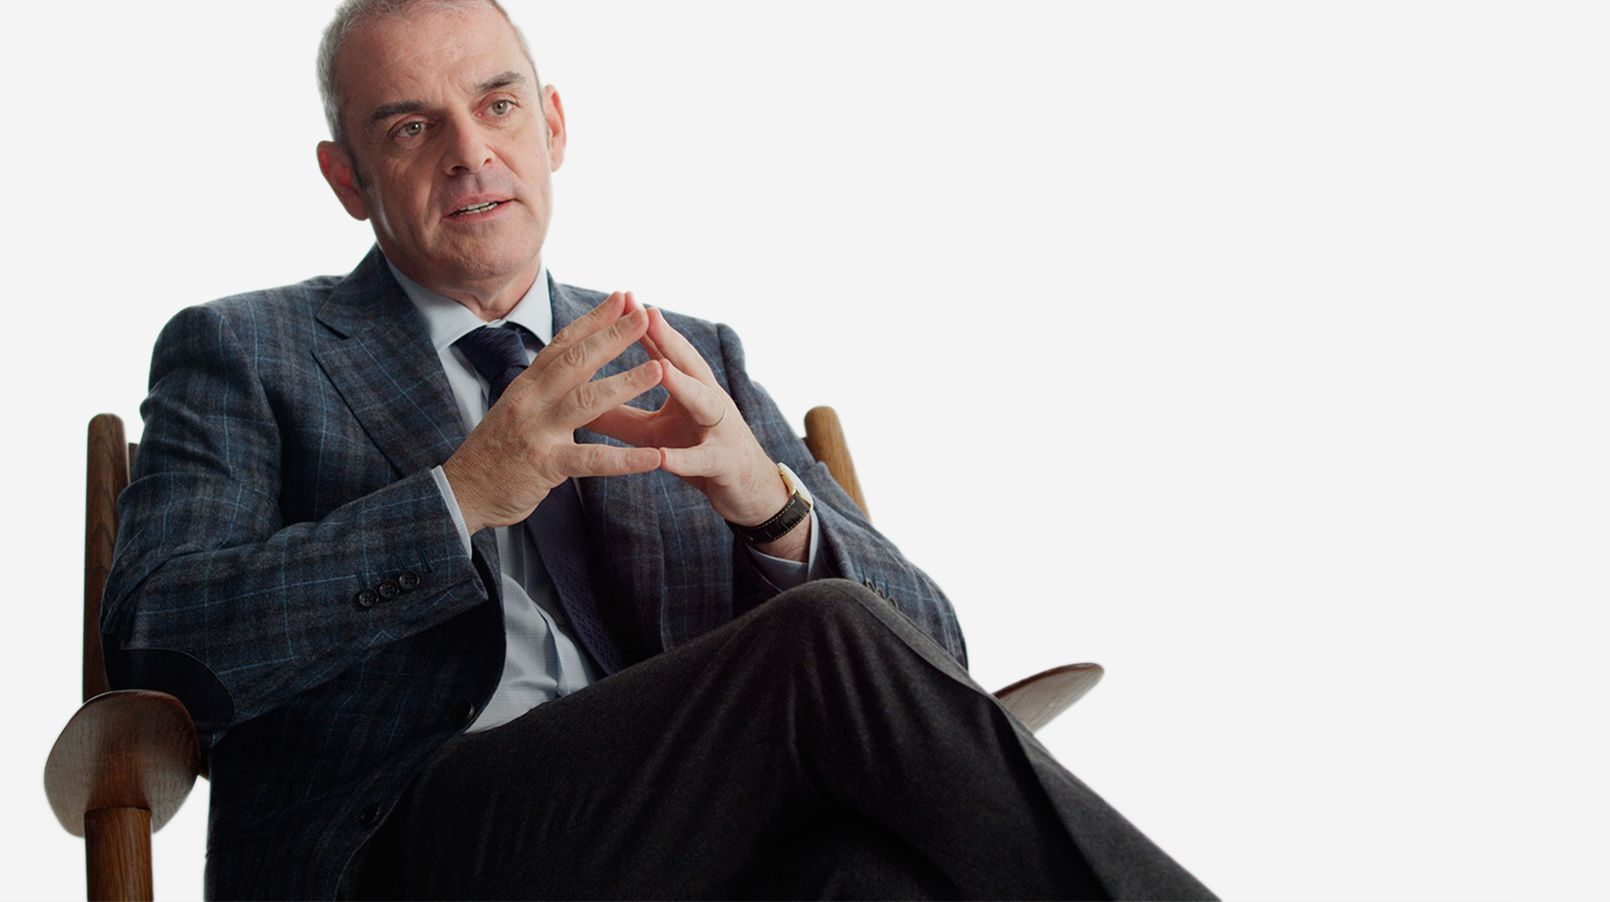 Canali 200 STEPS<br>Paul McGinley